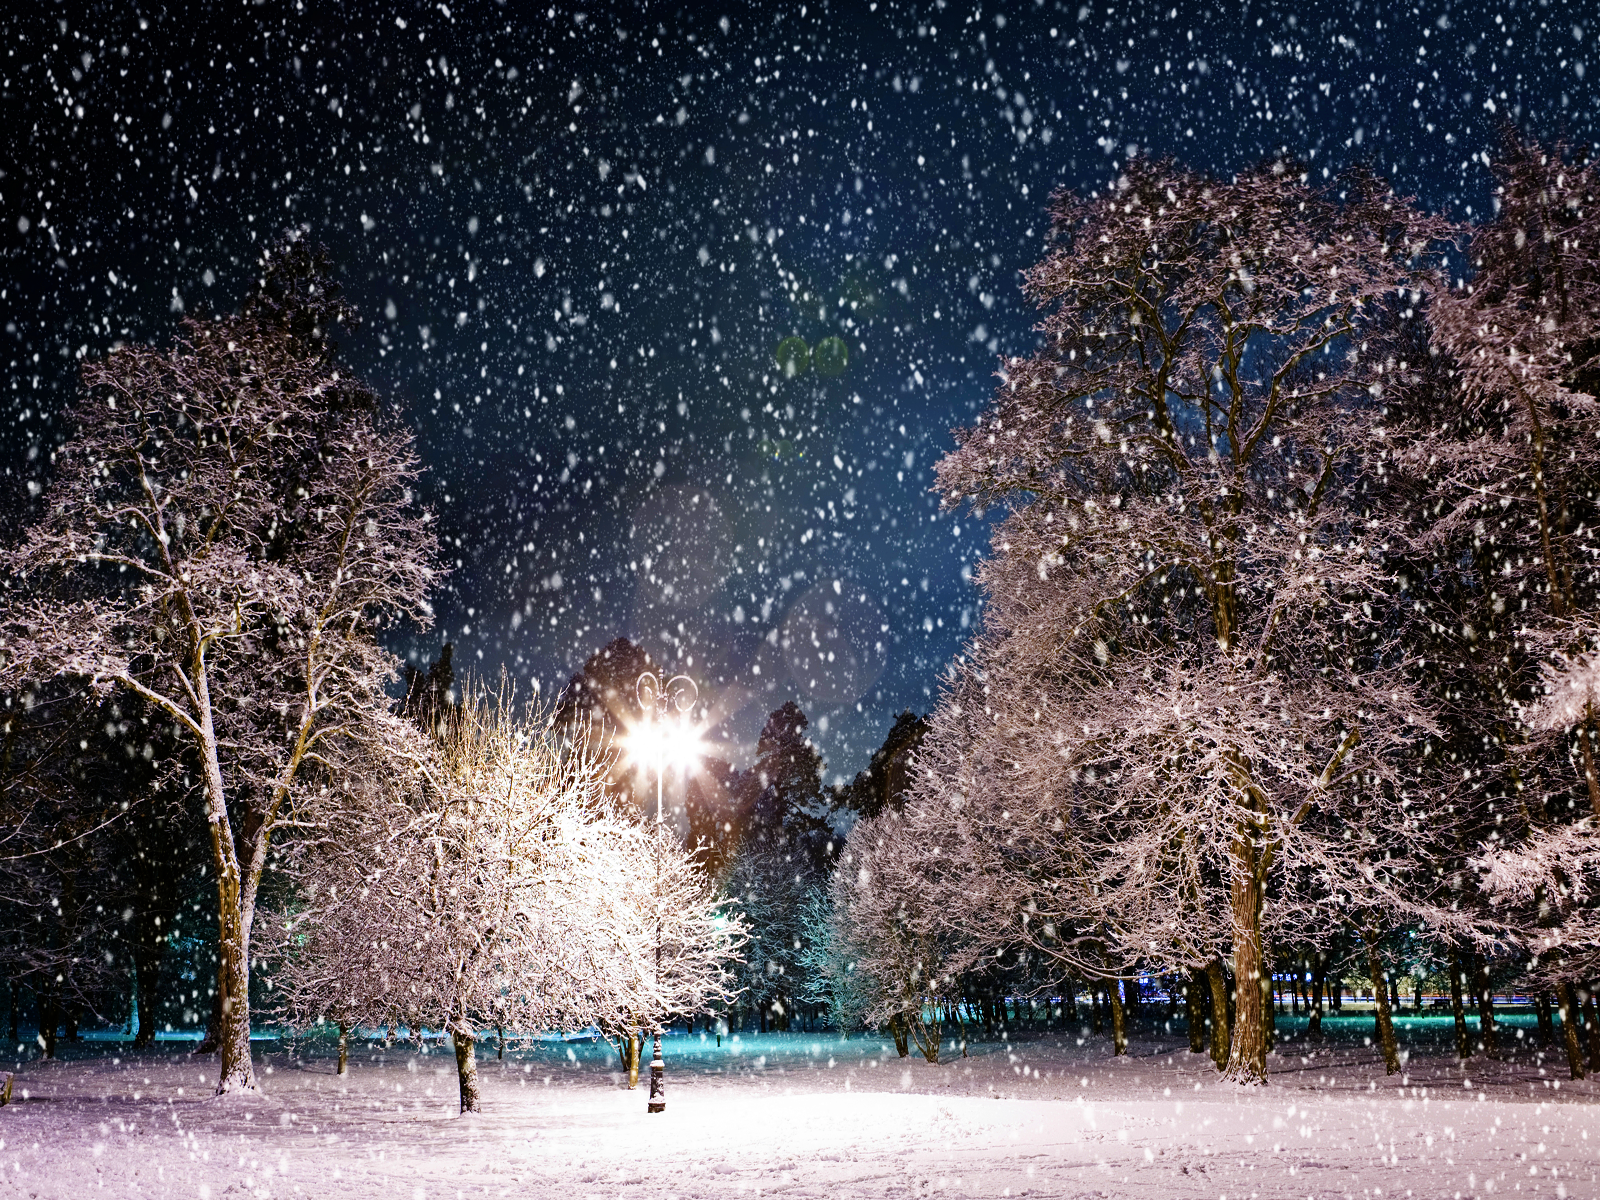 Snowy Night Background - HD Wallpapers Blog